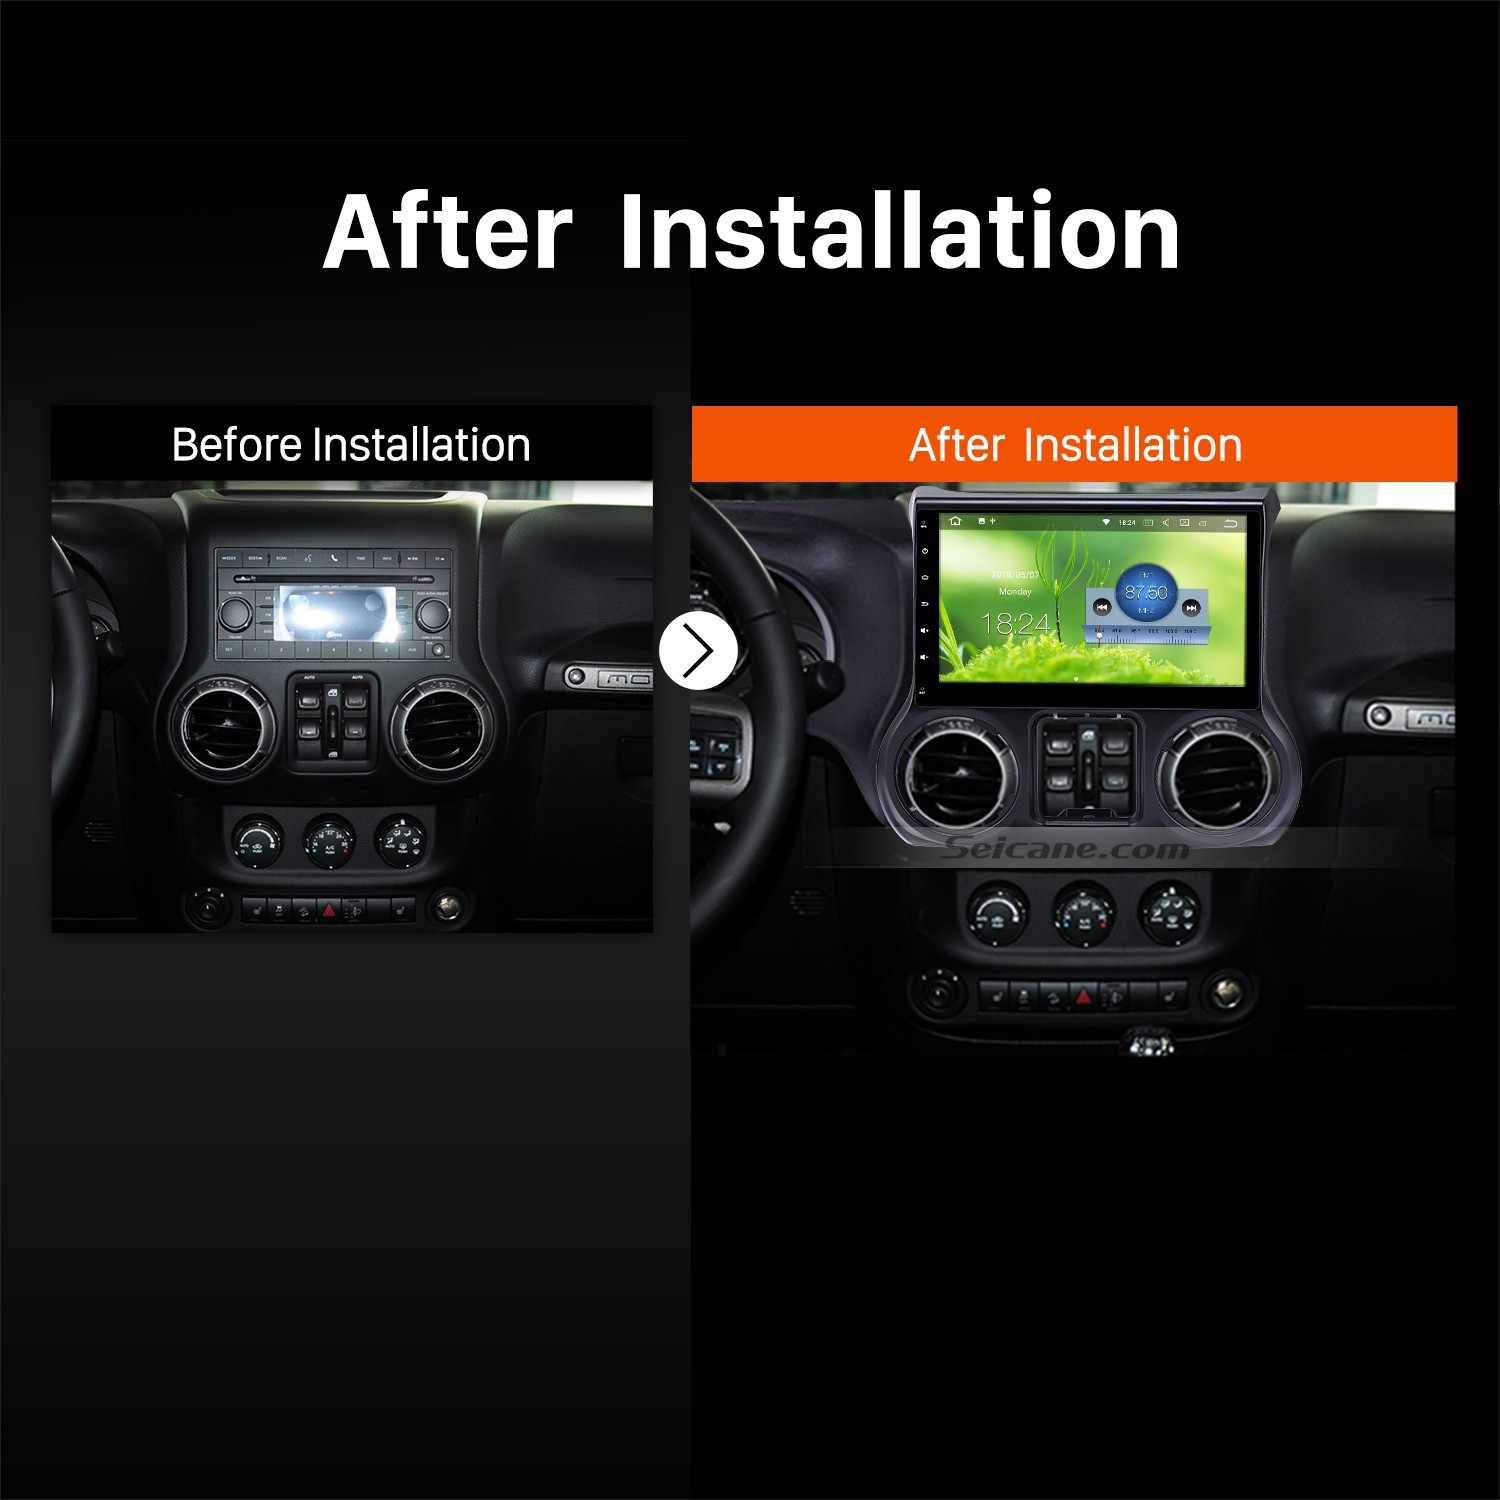 2011 2012 2013 2014 2015 2016 JEEP Wrangler Car Stereo after installation